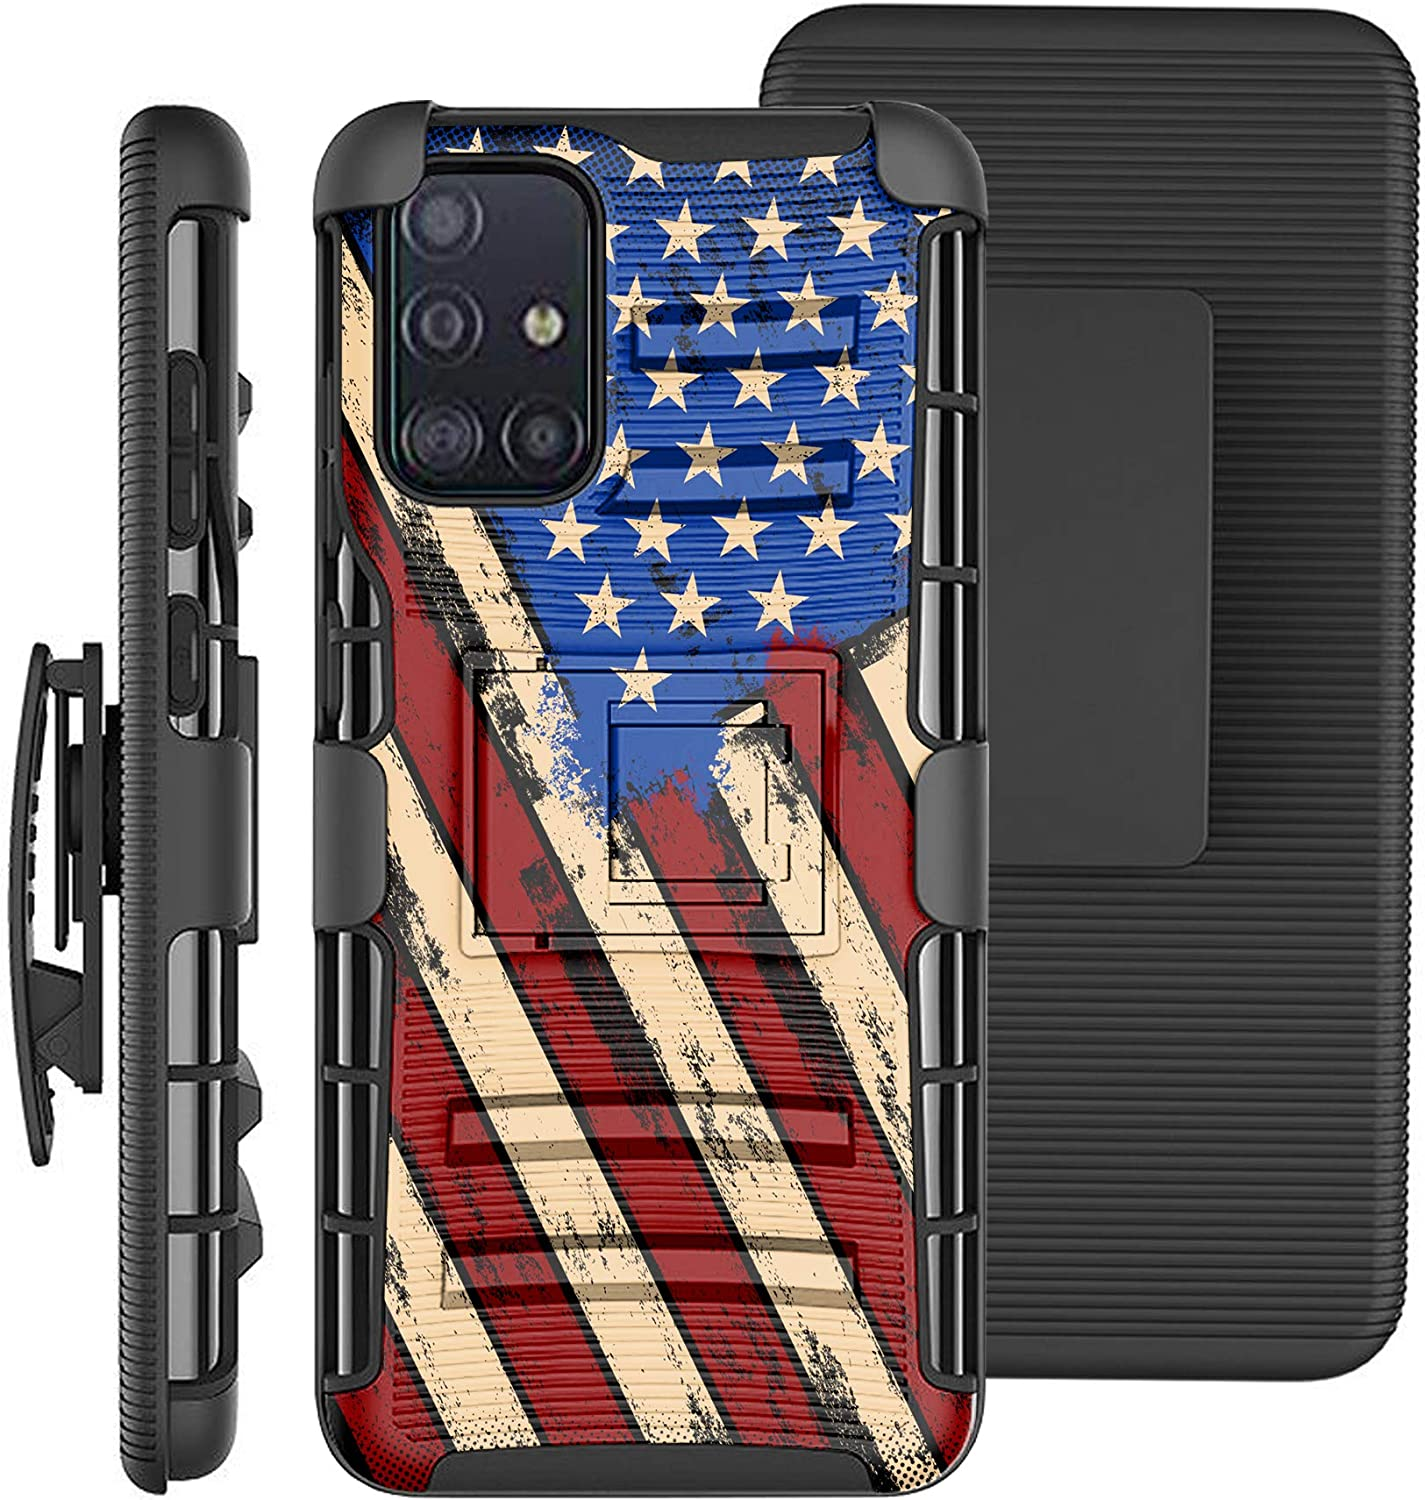 DALUX Hybrid Kickstand Holster Phone Case Compatible with Galaxy A71 5G (2020)- Graffiti US Flag Print